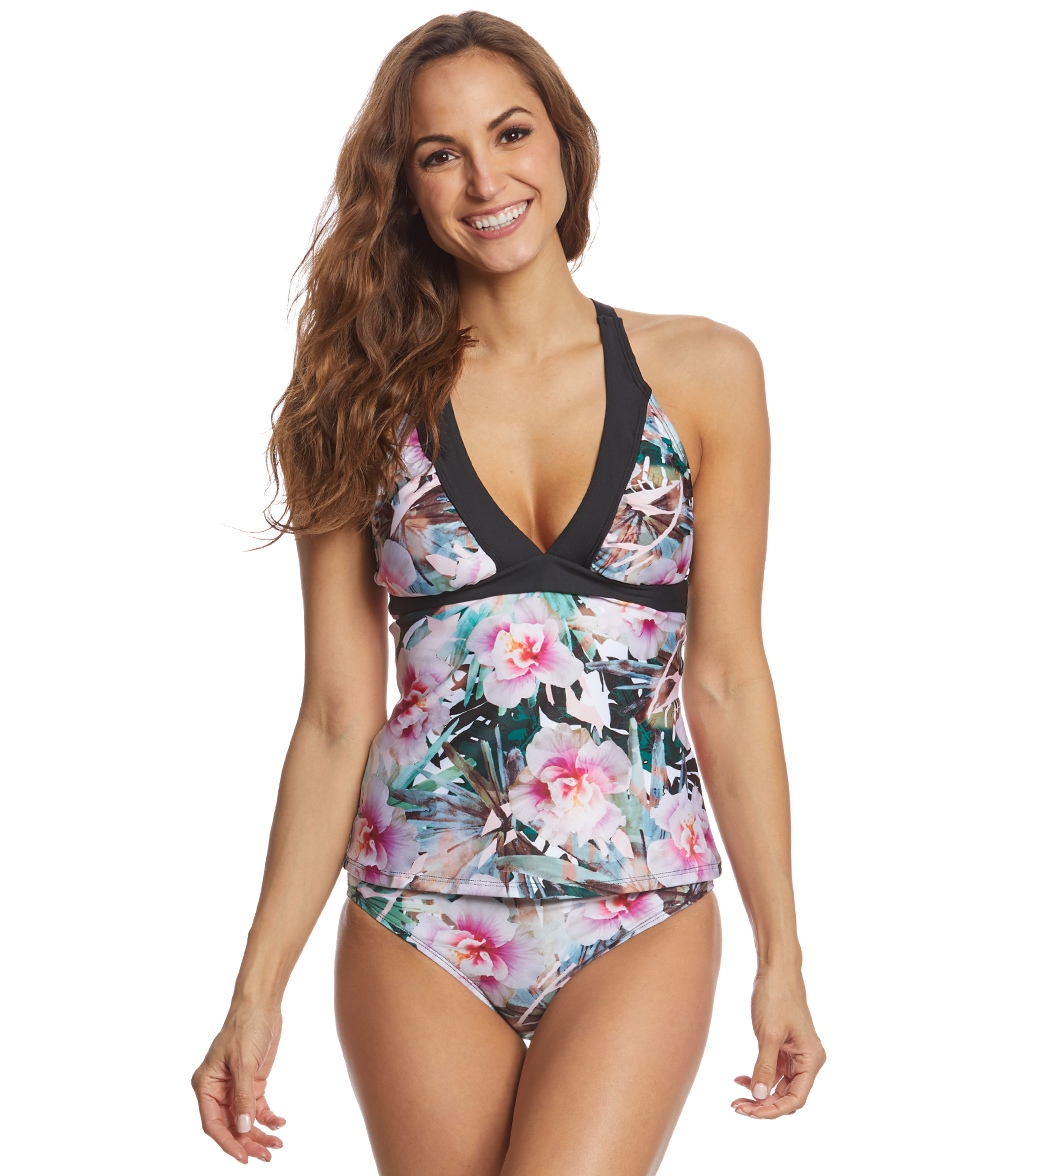 a45747056b68a Next Undercover Tropics Intensify Superwoman Tankini Top (D Cup) at  SwimOutlet.com - Free Shipping